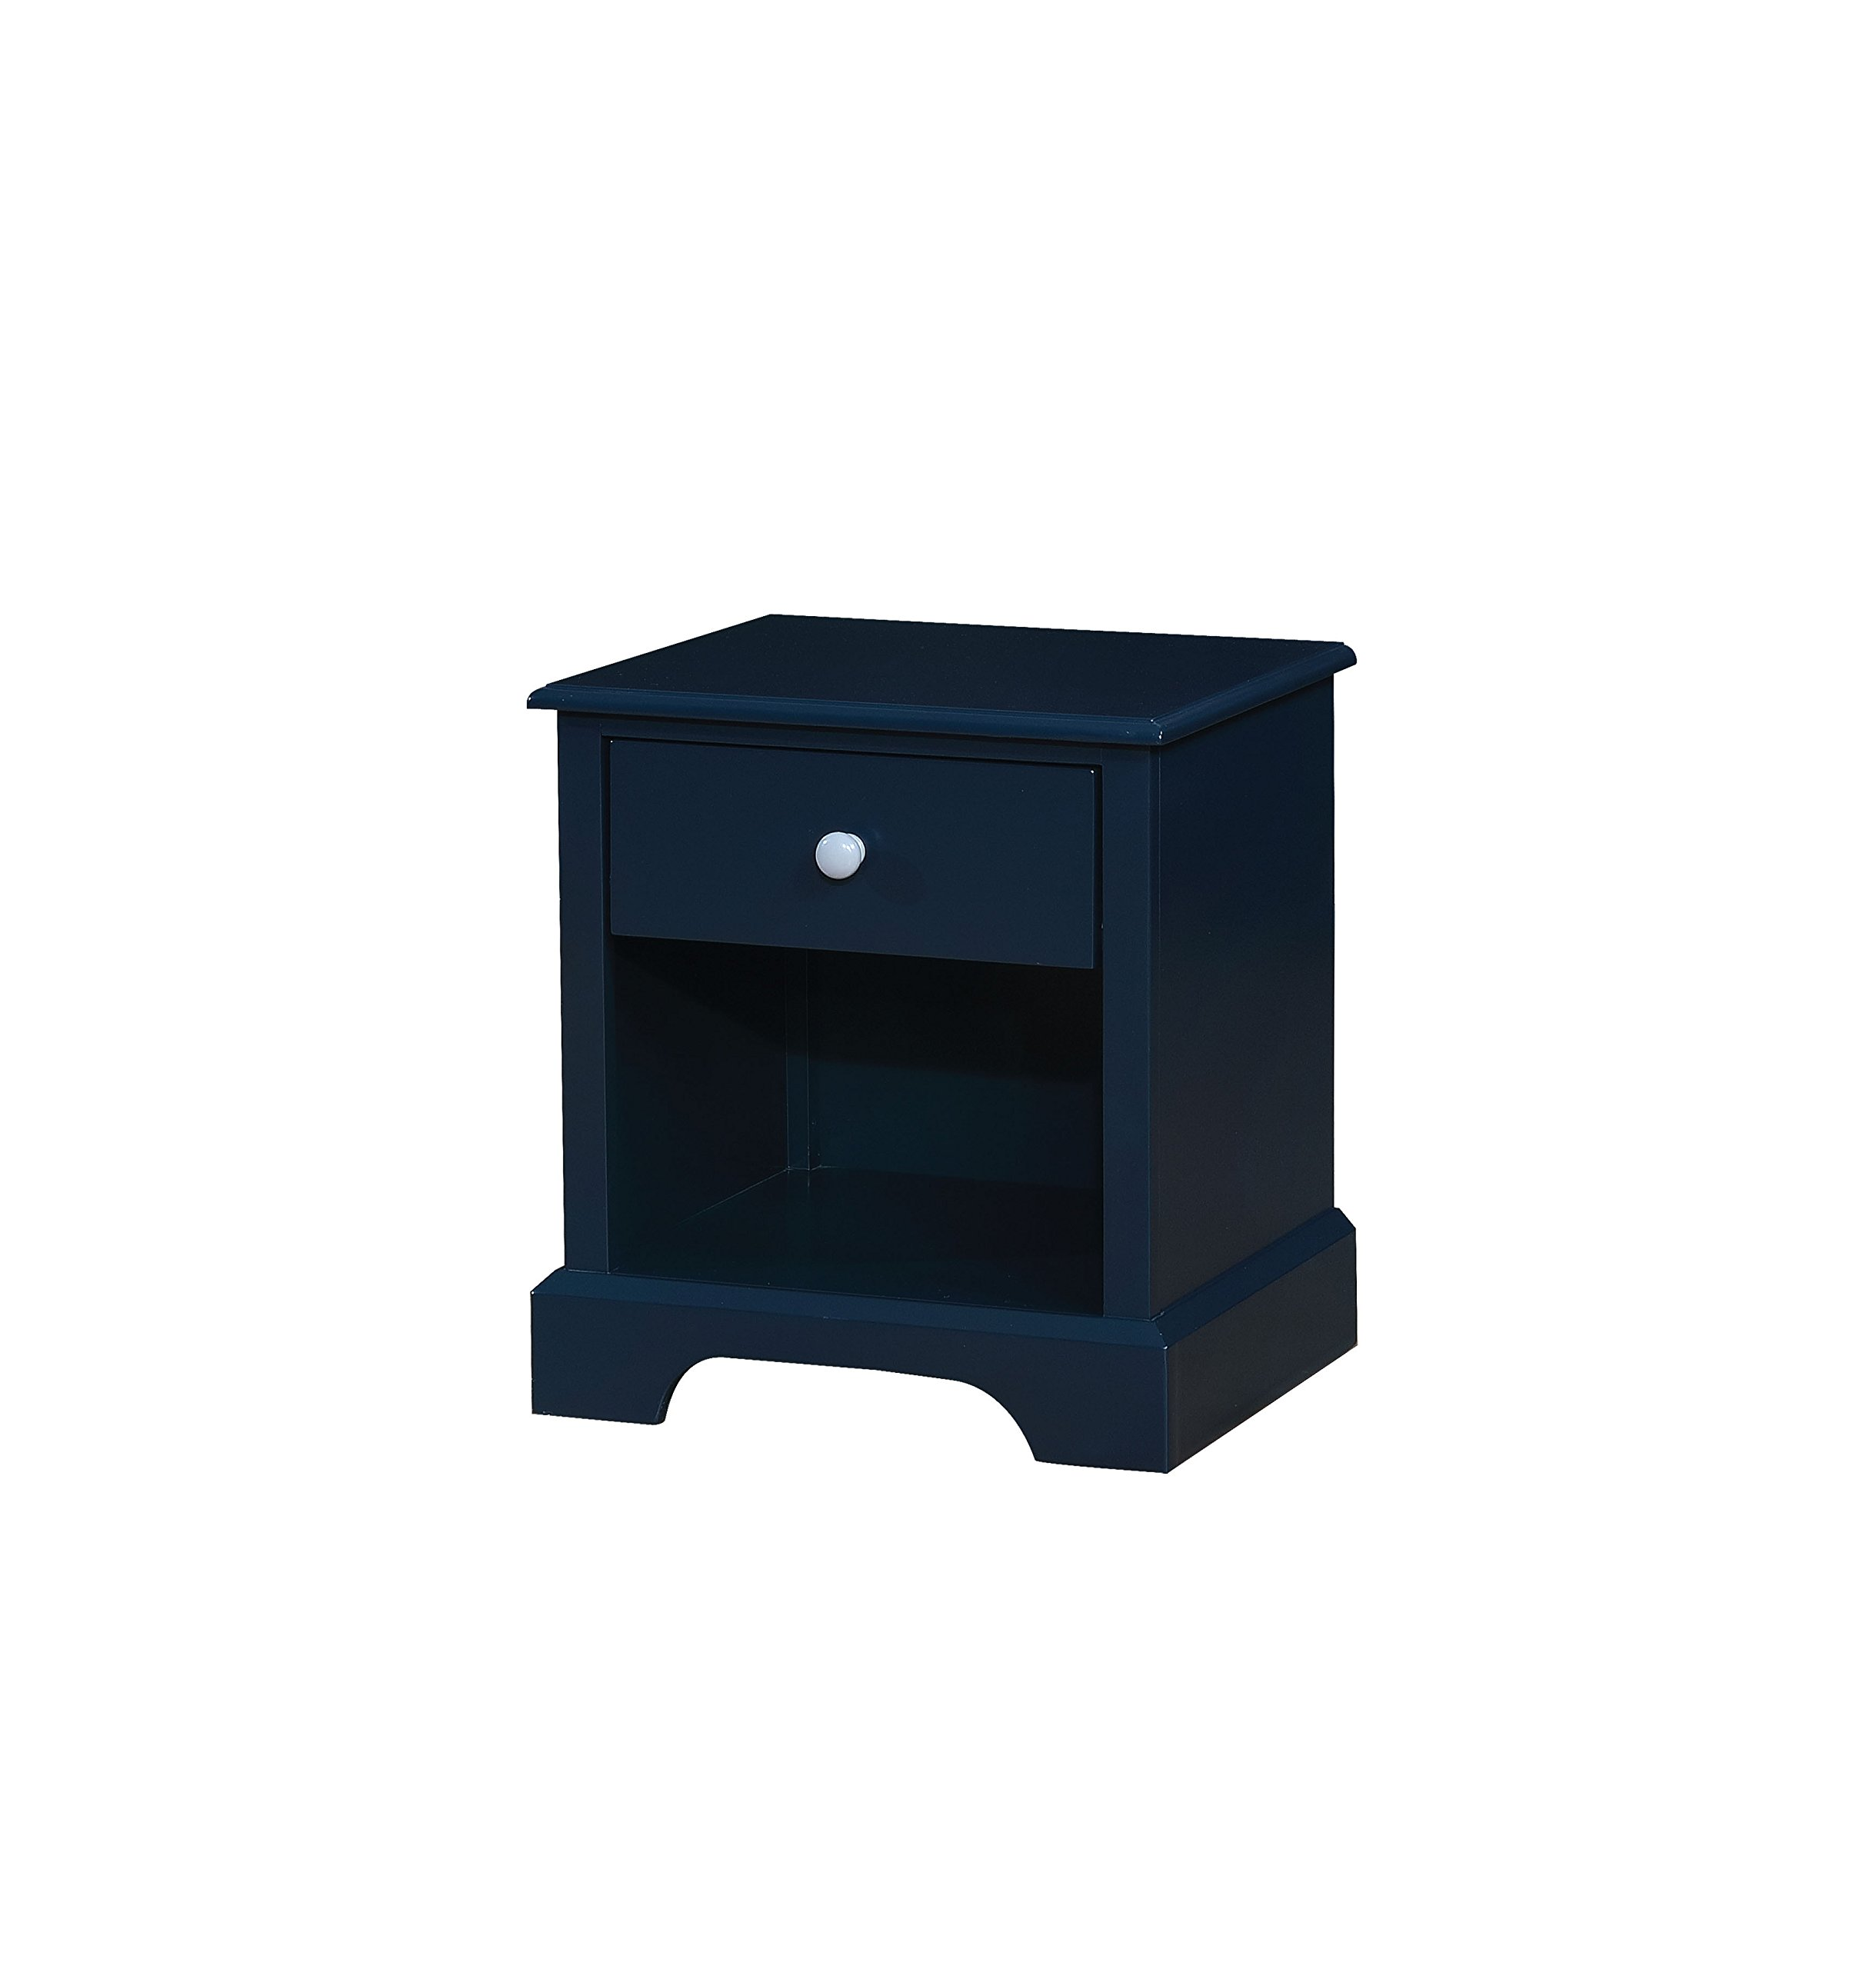 HOMES: Inside + Out IDF-7158BL-N Triton Nightstand, Blue